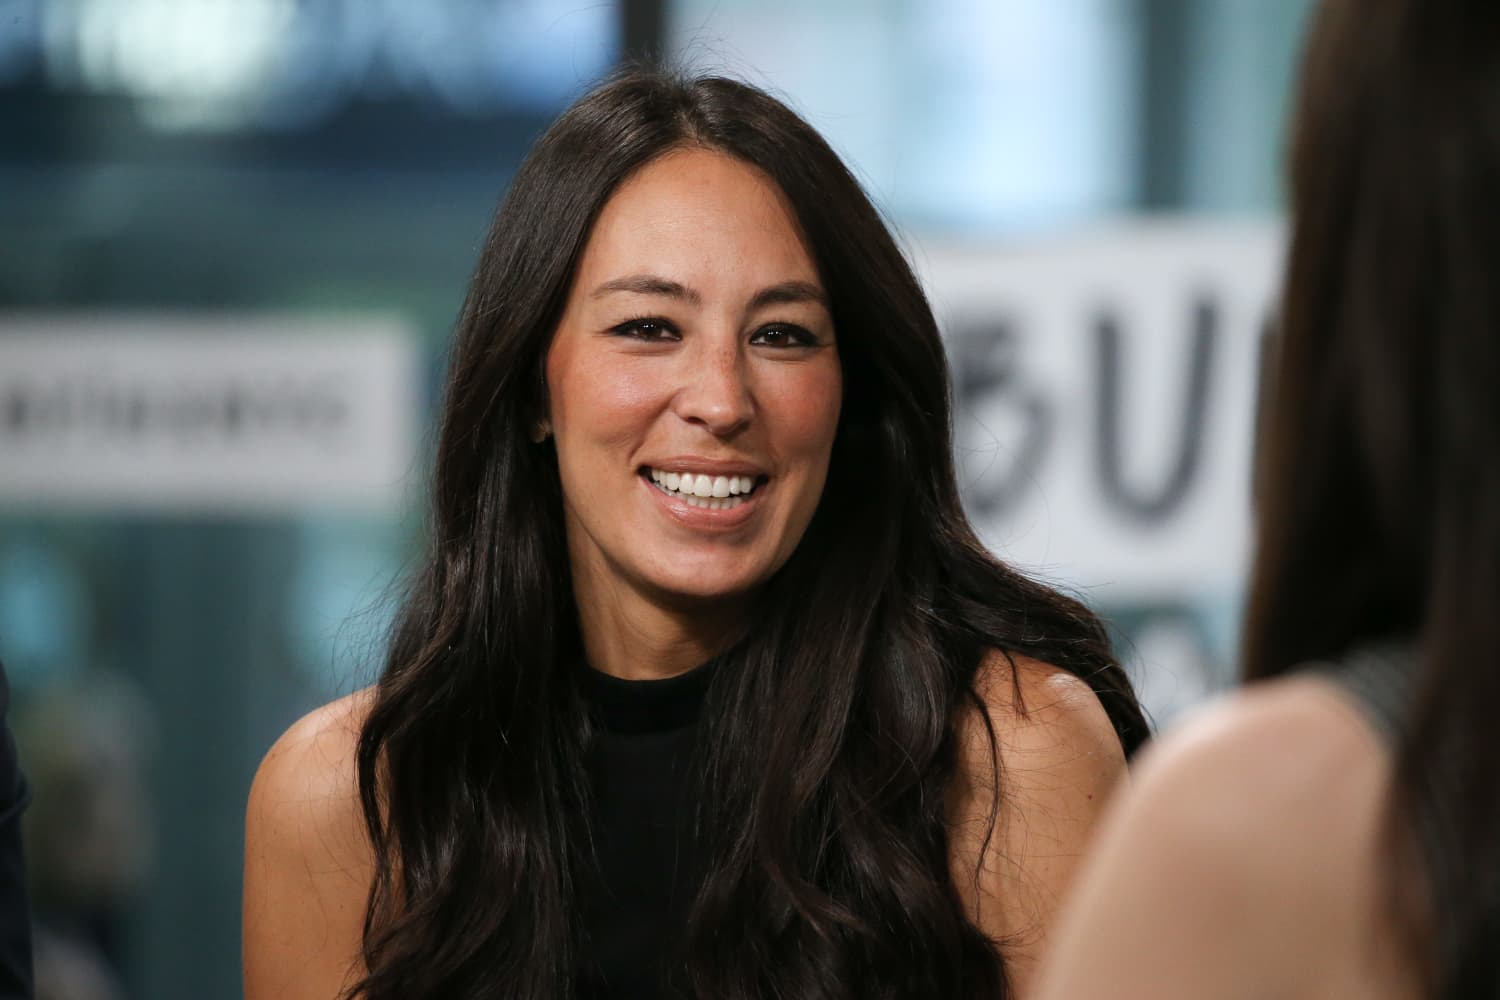 Joanna Gaines Is Giving Away $50,000 To Celebrate Magnolia's Anniversary